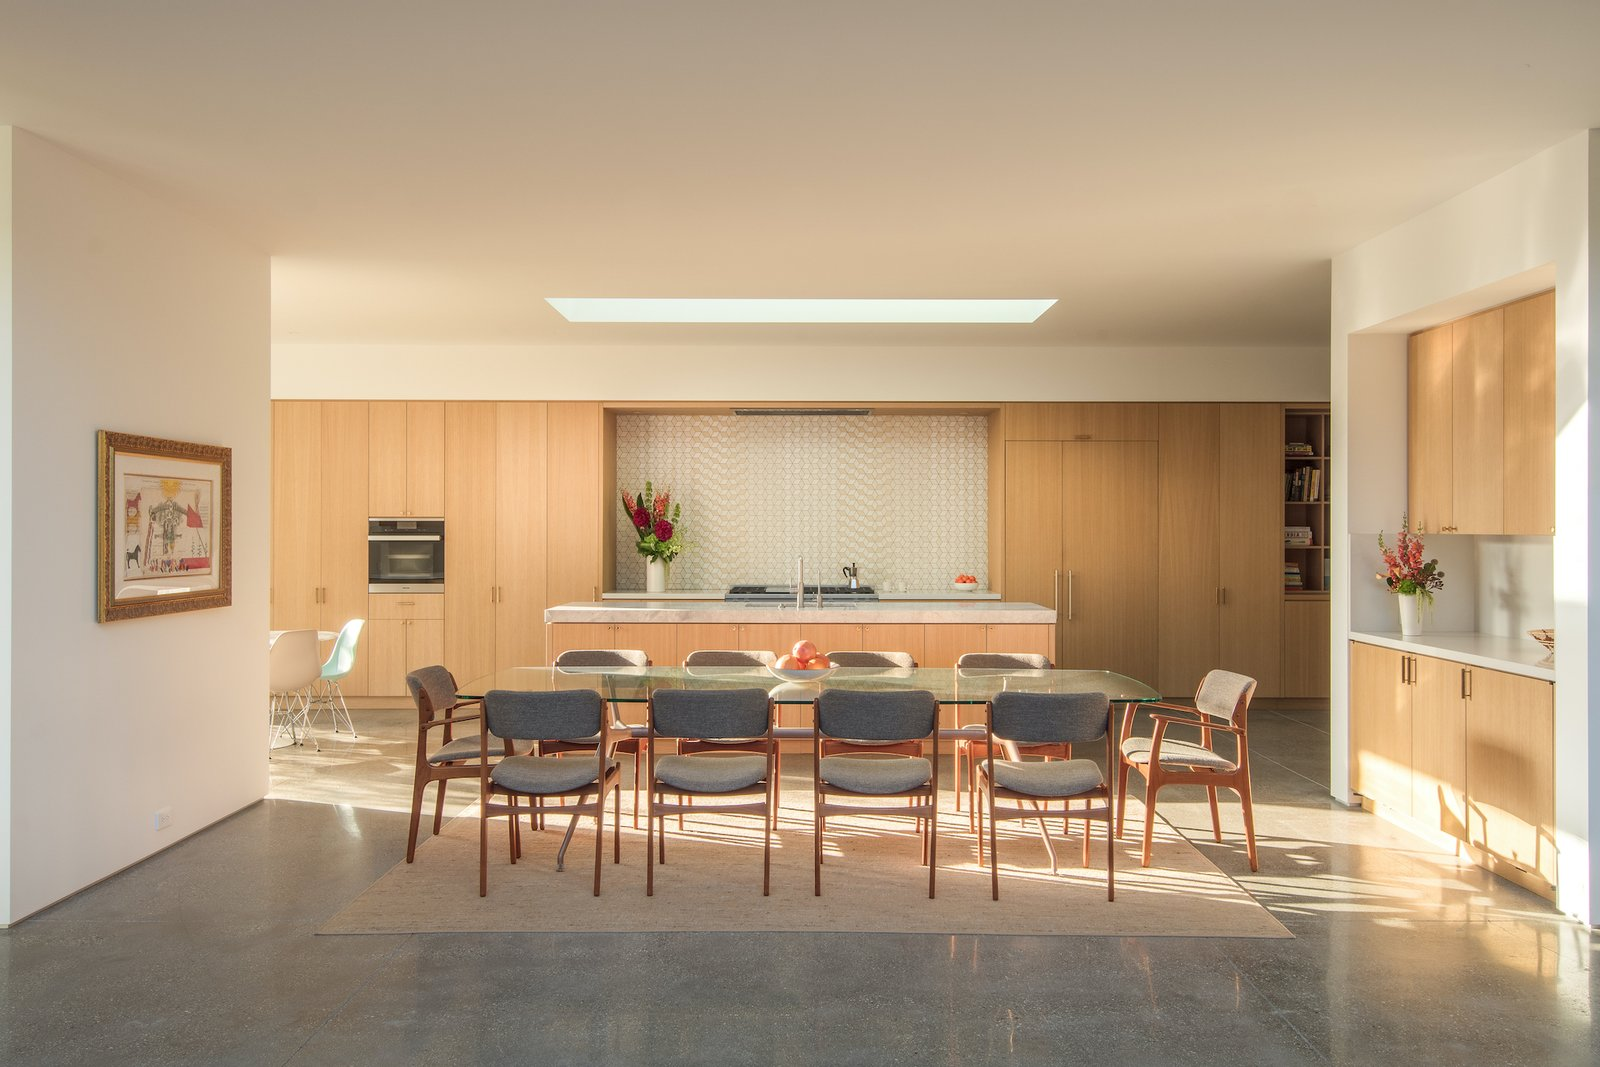 Dining room at Culver City Case Study House by Woods + Dangaran.